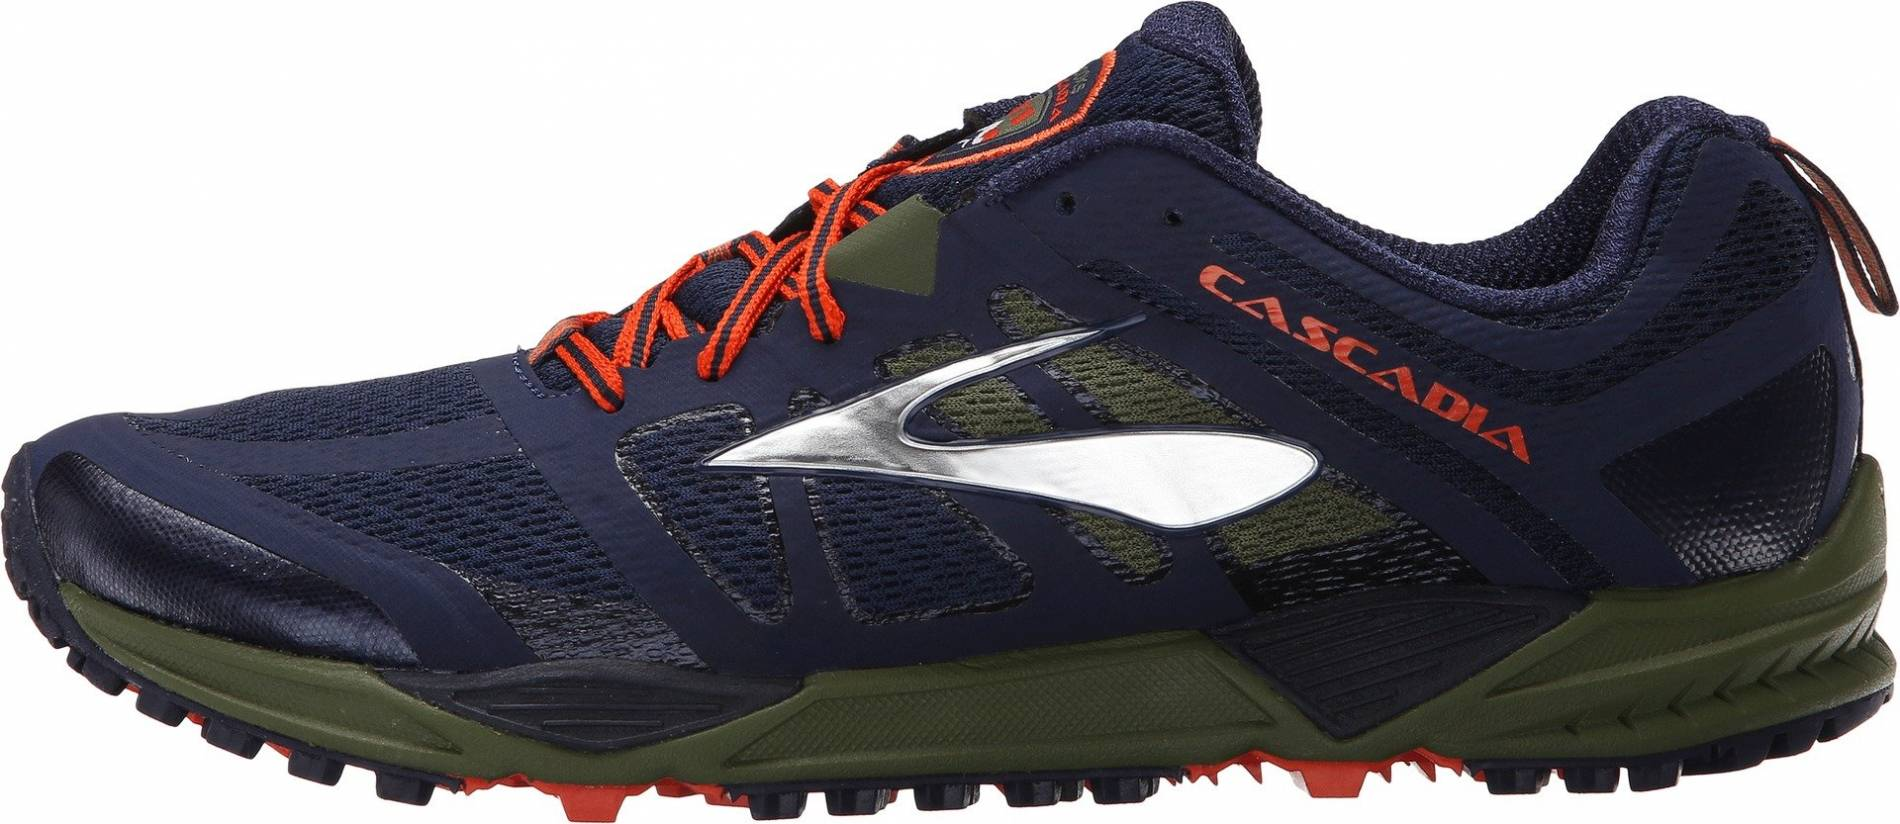 Save 30% on Brooks Trail Running Shoes